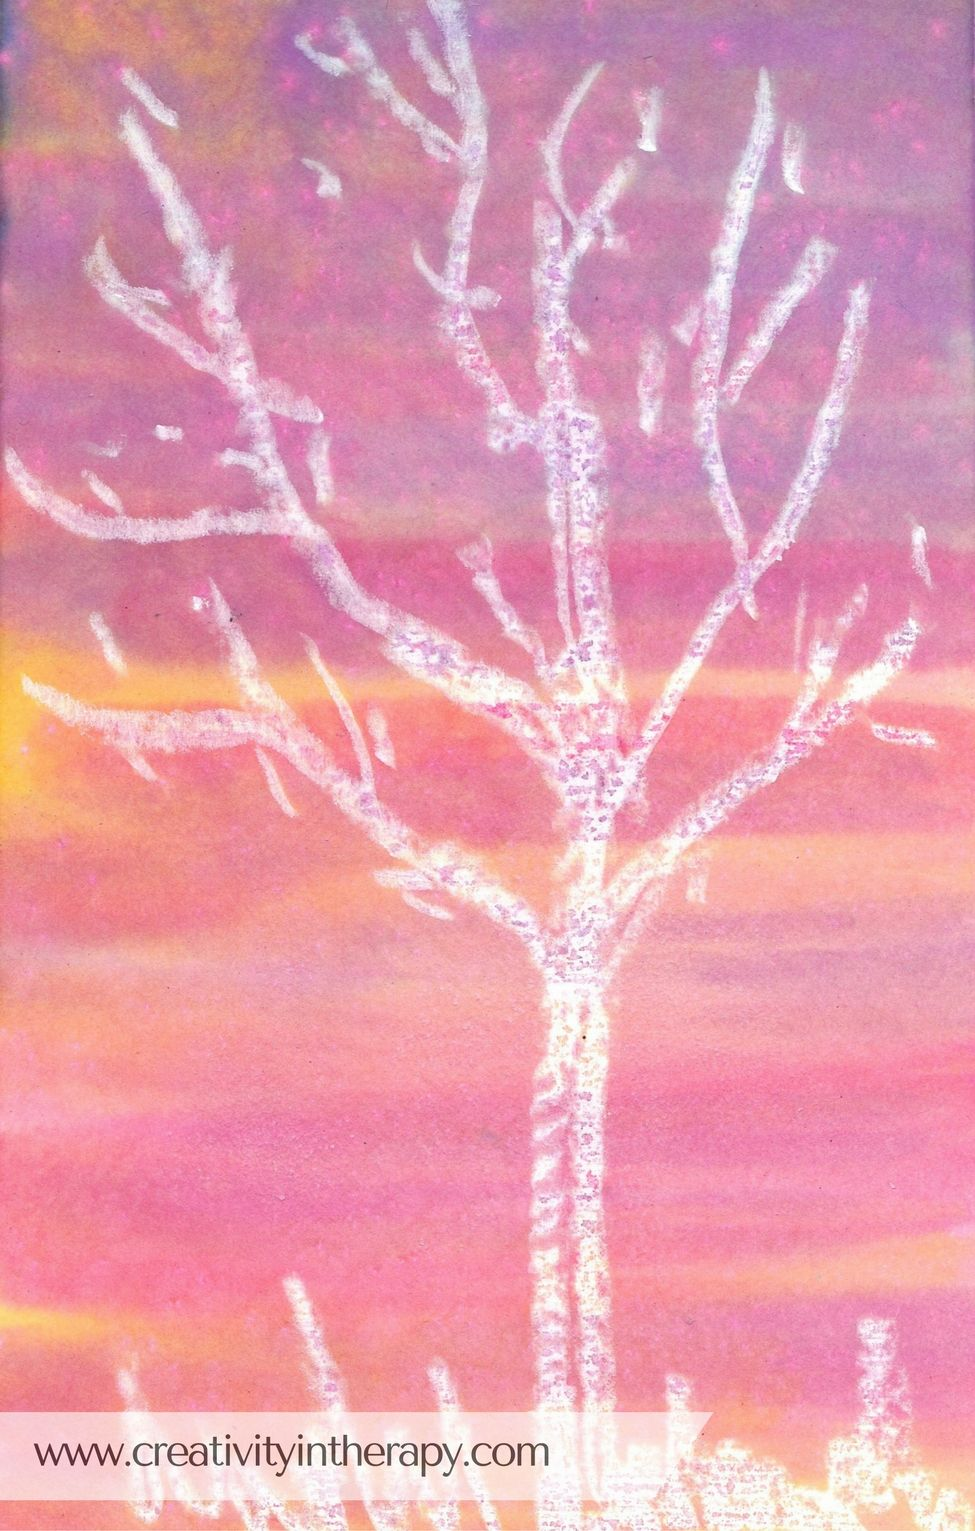 Watercolor Oil Pastel Resist Painting In Art Therapy Art